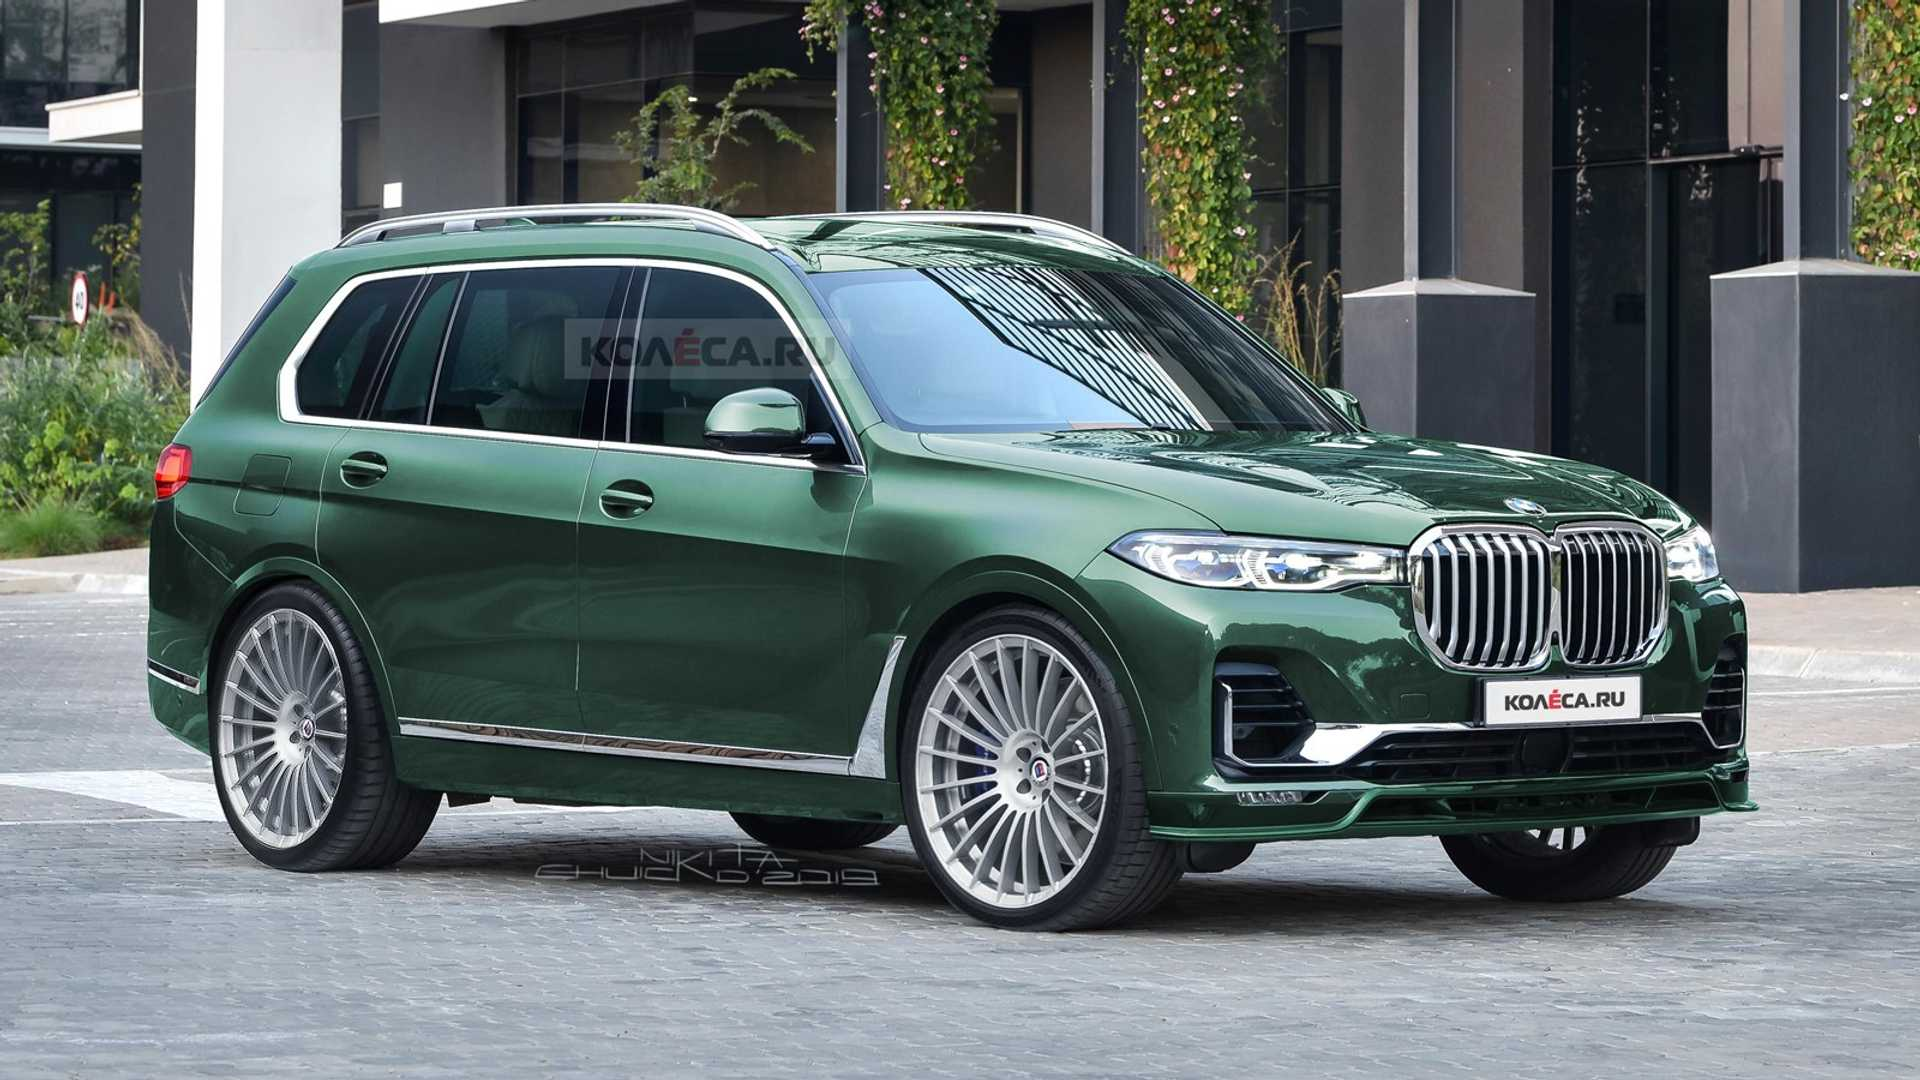 Alpina Bmw X7 Rendering Previews The Brawny Suv